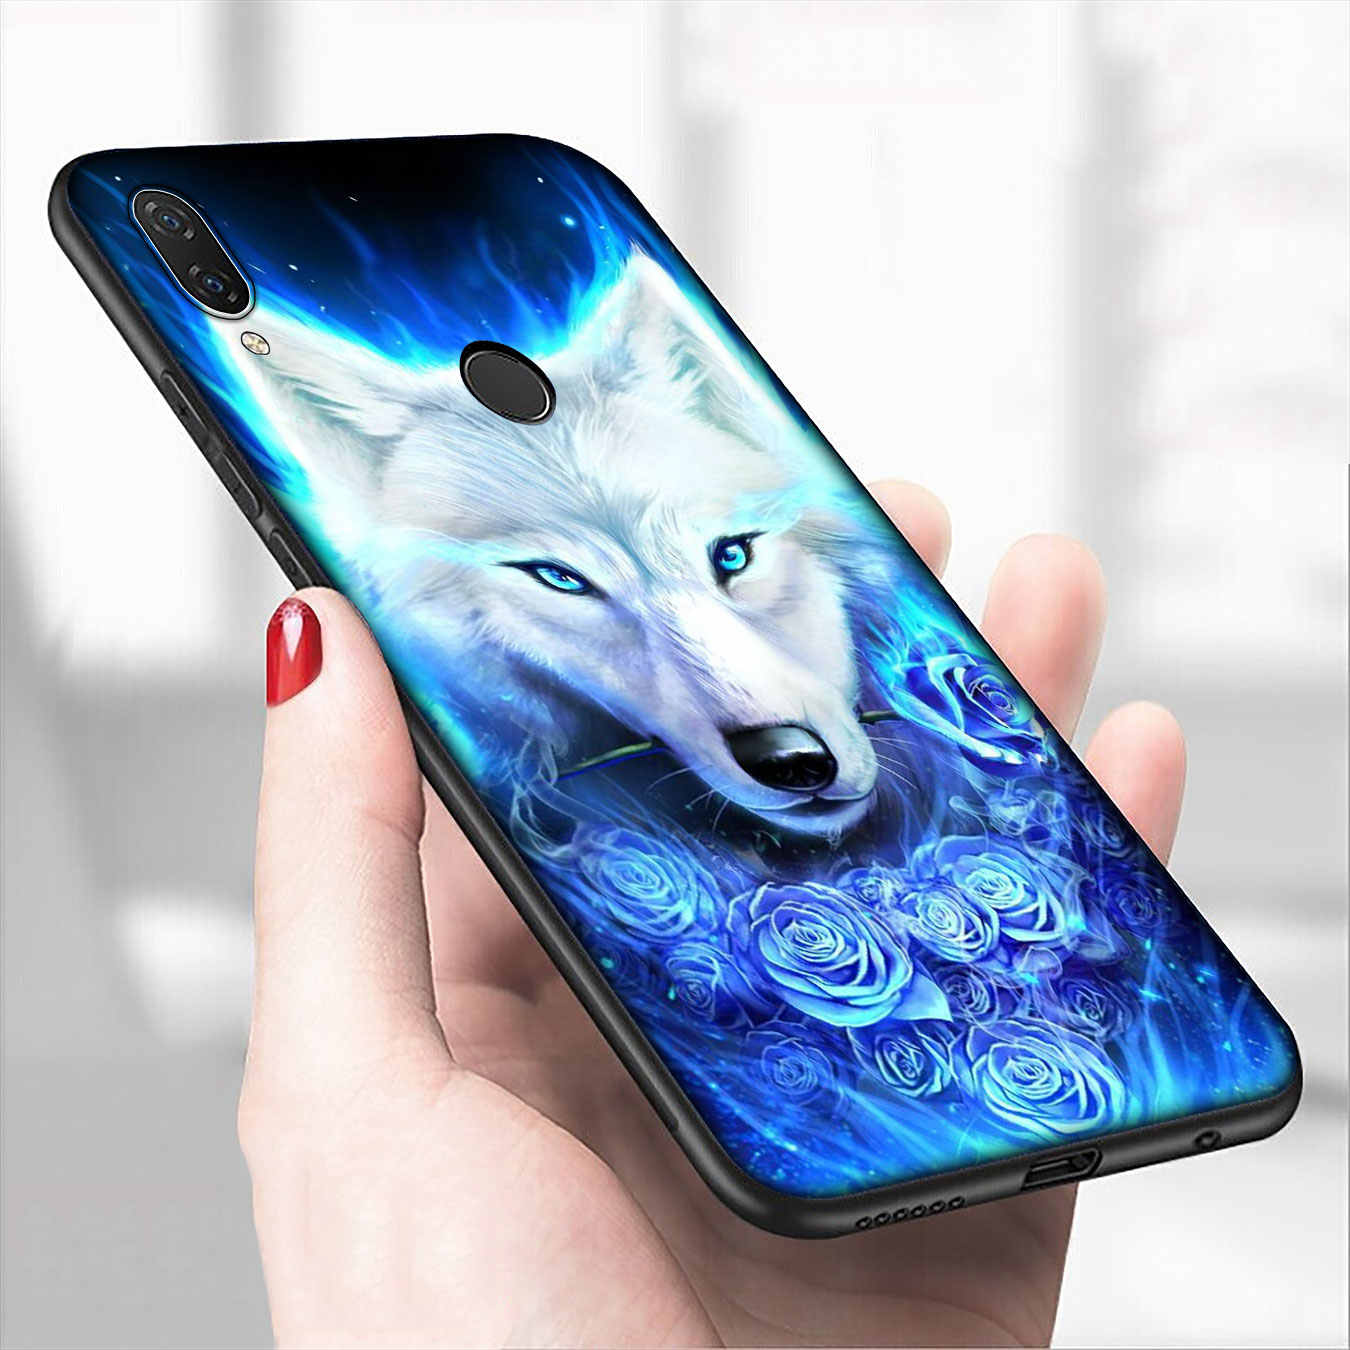 Iyicao Moon Wolf Abstract Tiger Lembut Silicone Ponsel Case untuk Xiaomi Redmi Note 8 8T 8A 7 7A 6 6A 5 5A Pergi S2 K30 K20 Pro Cover